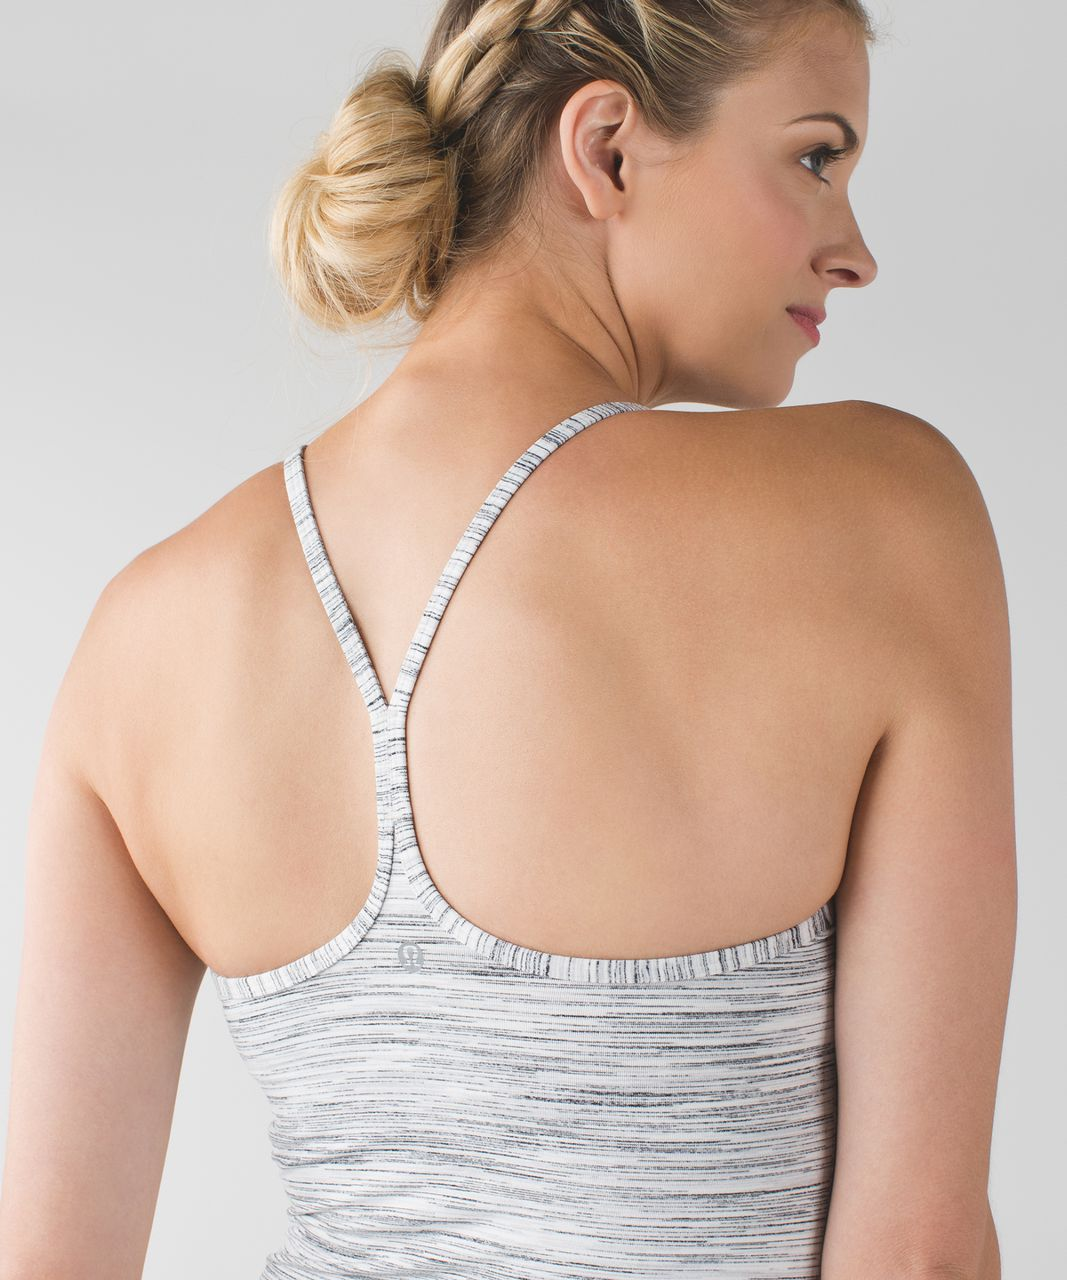 Lululemon Power Y Tank *Luon - Space Dye Camo White Silver Spoon